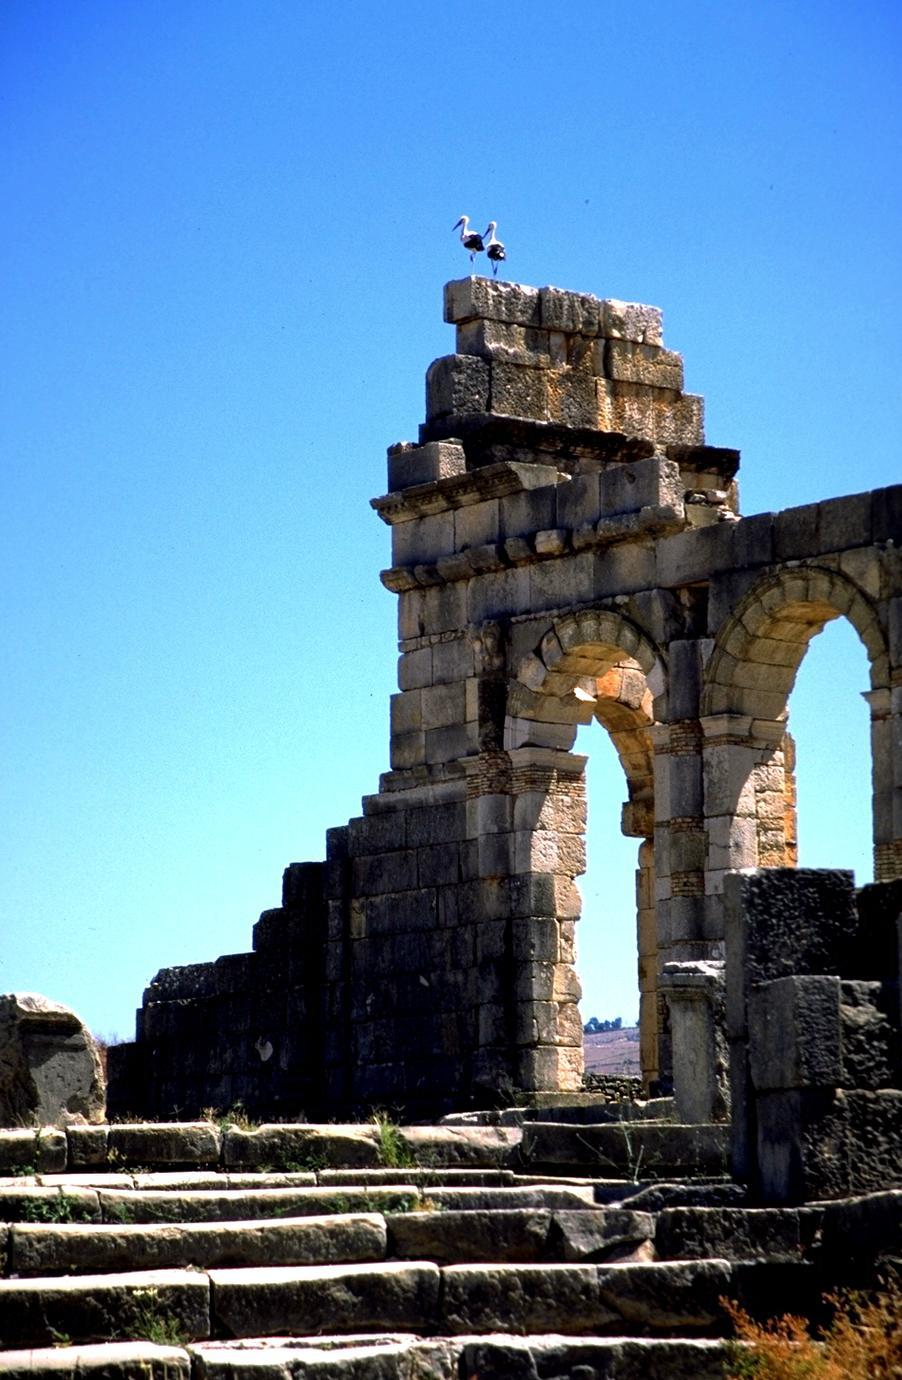 Volubilis Roman Ruins with Storks at a Distance